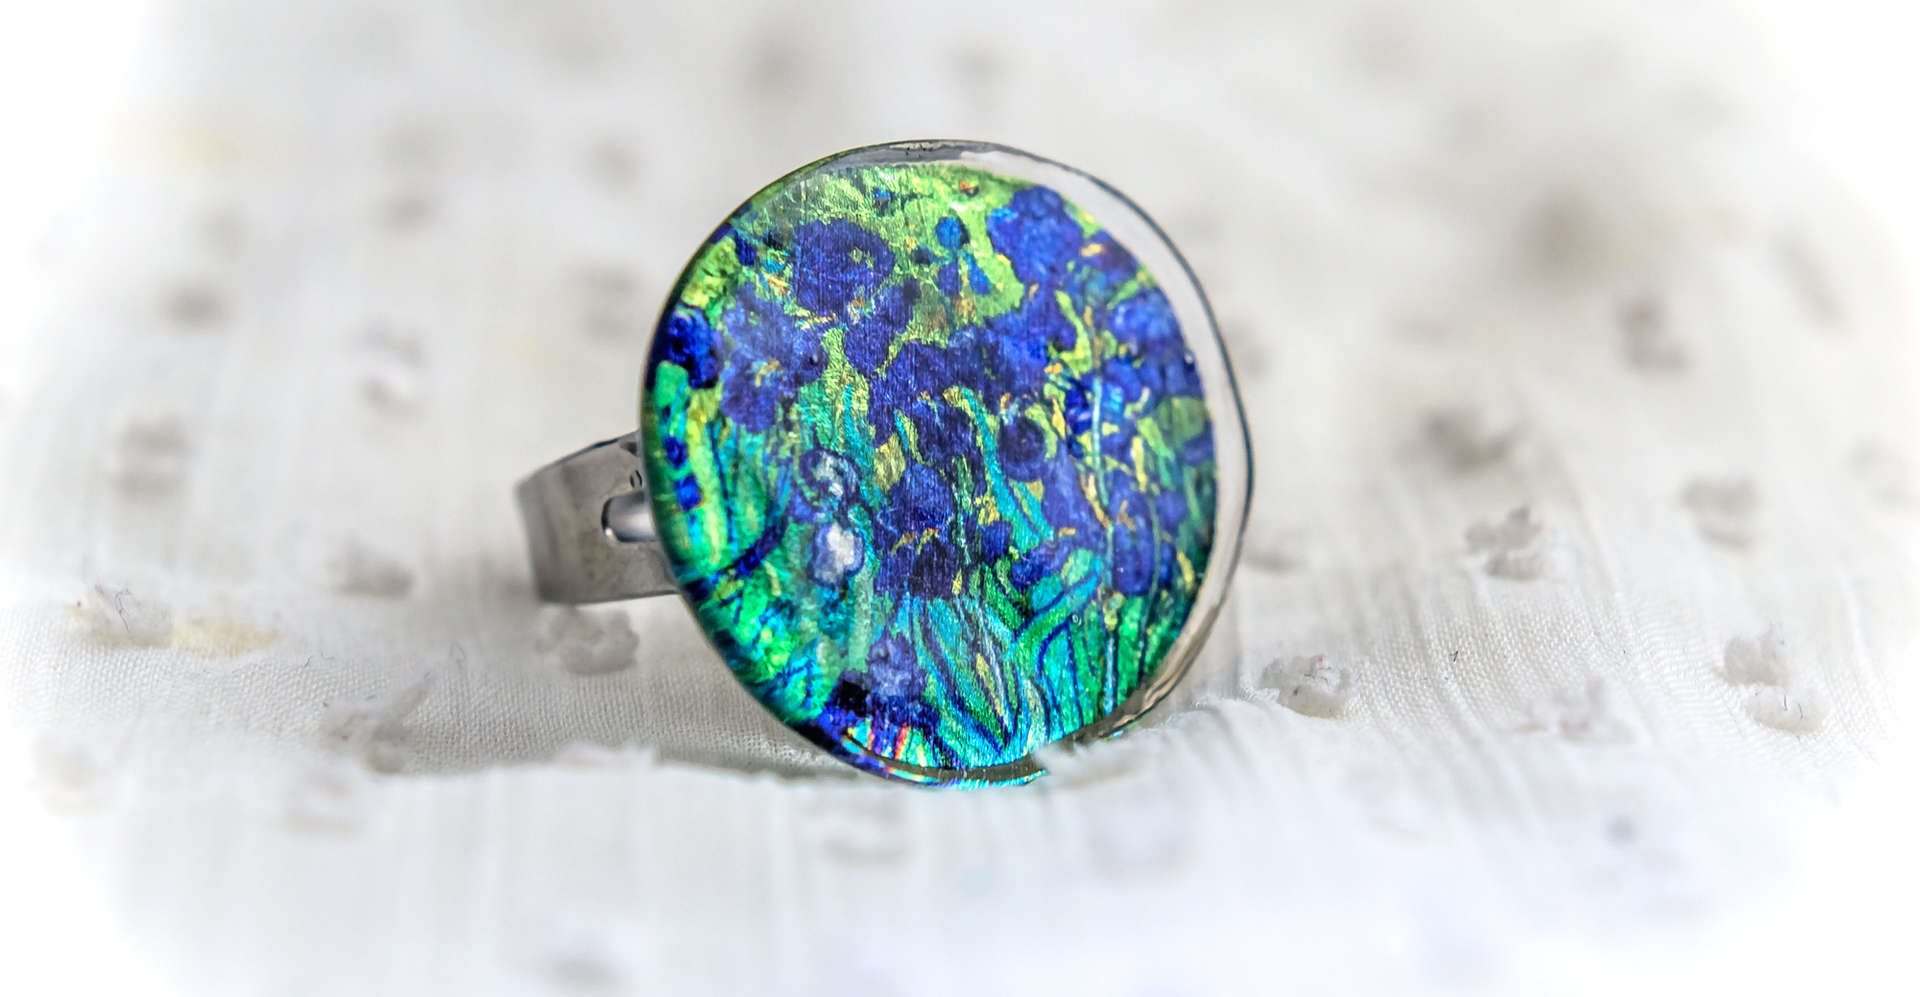 Rings Resin by PAGANE uniques Design (37